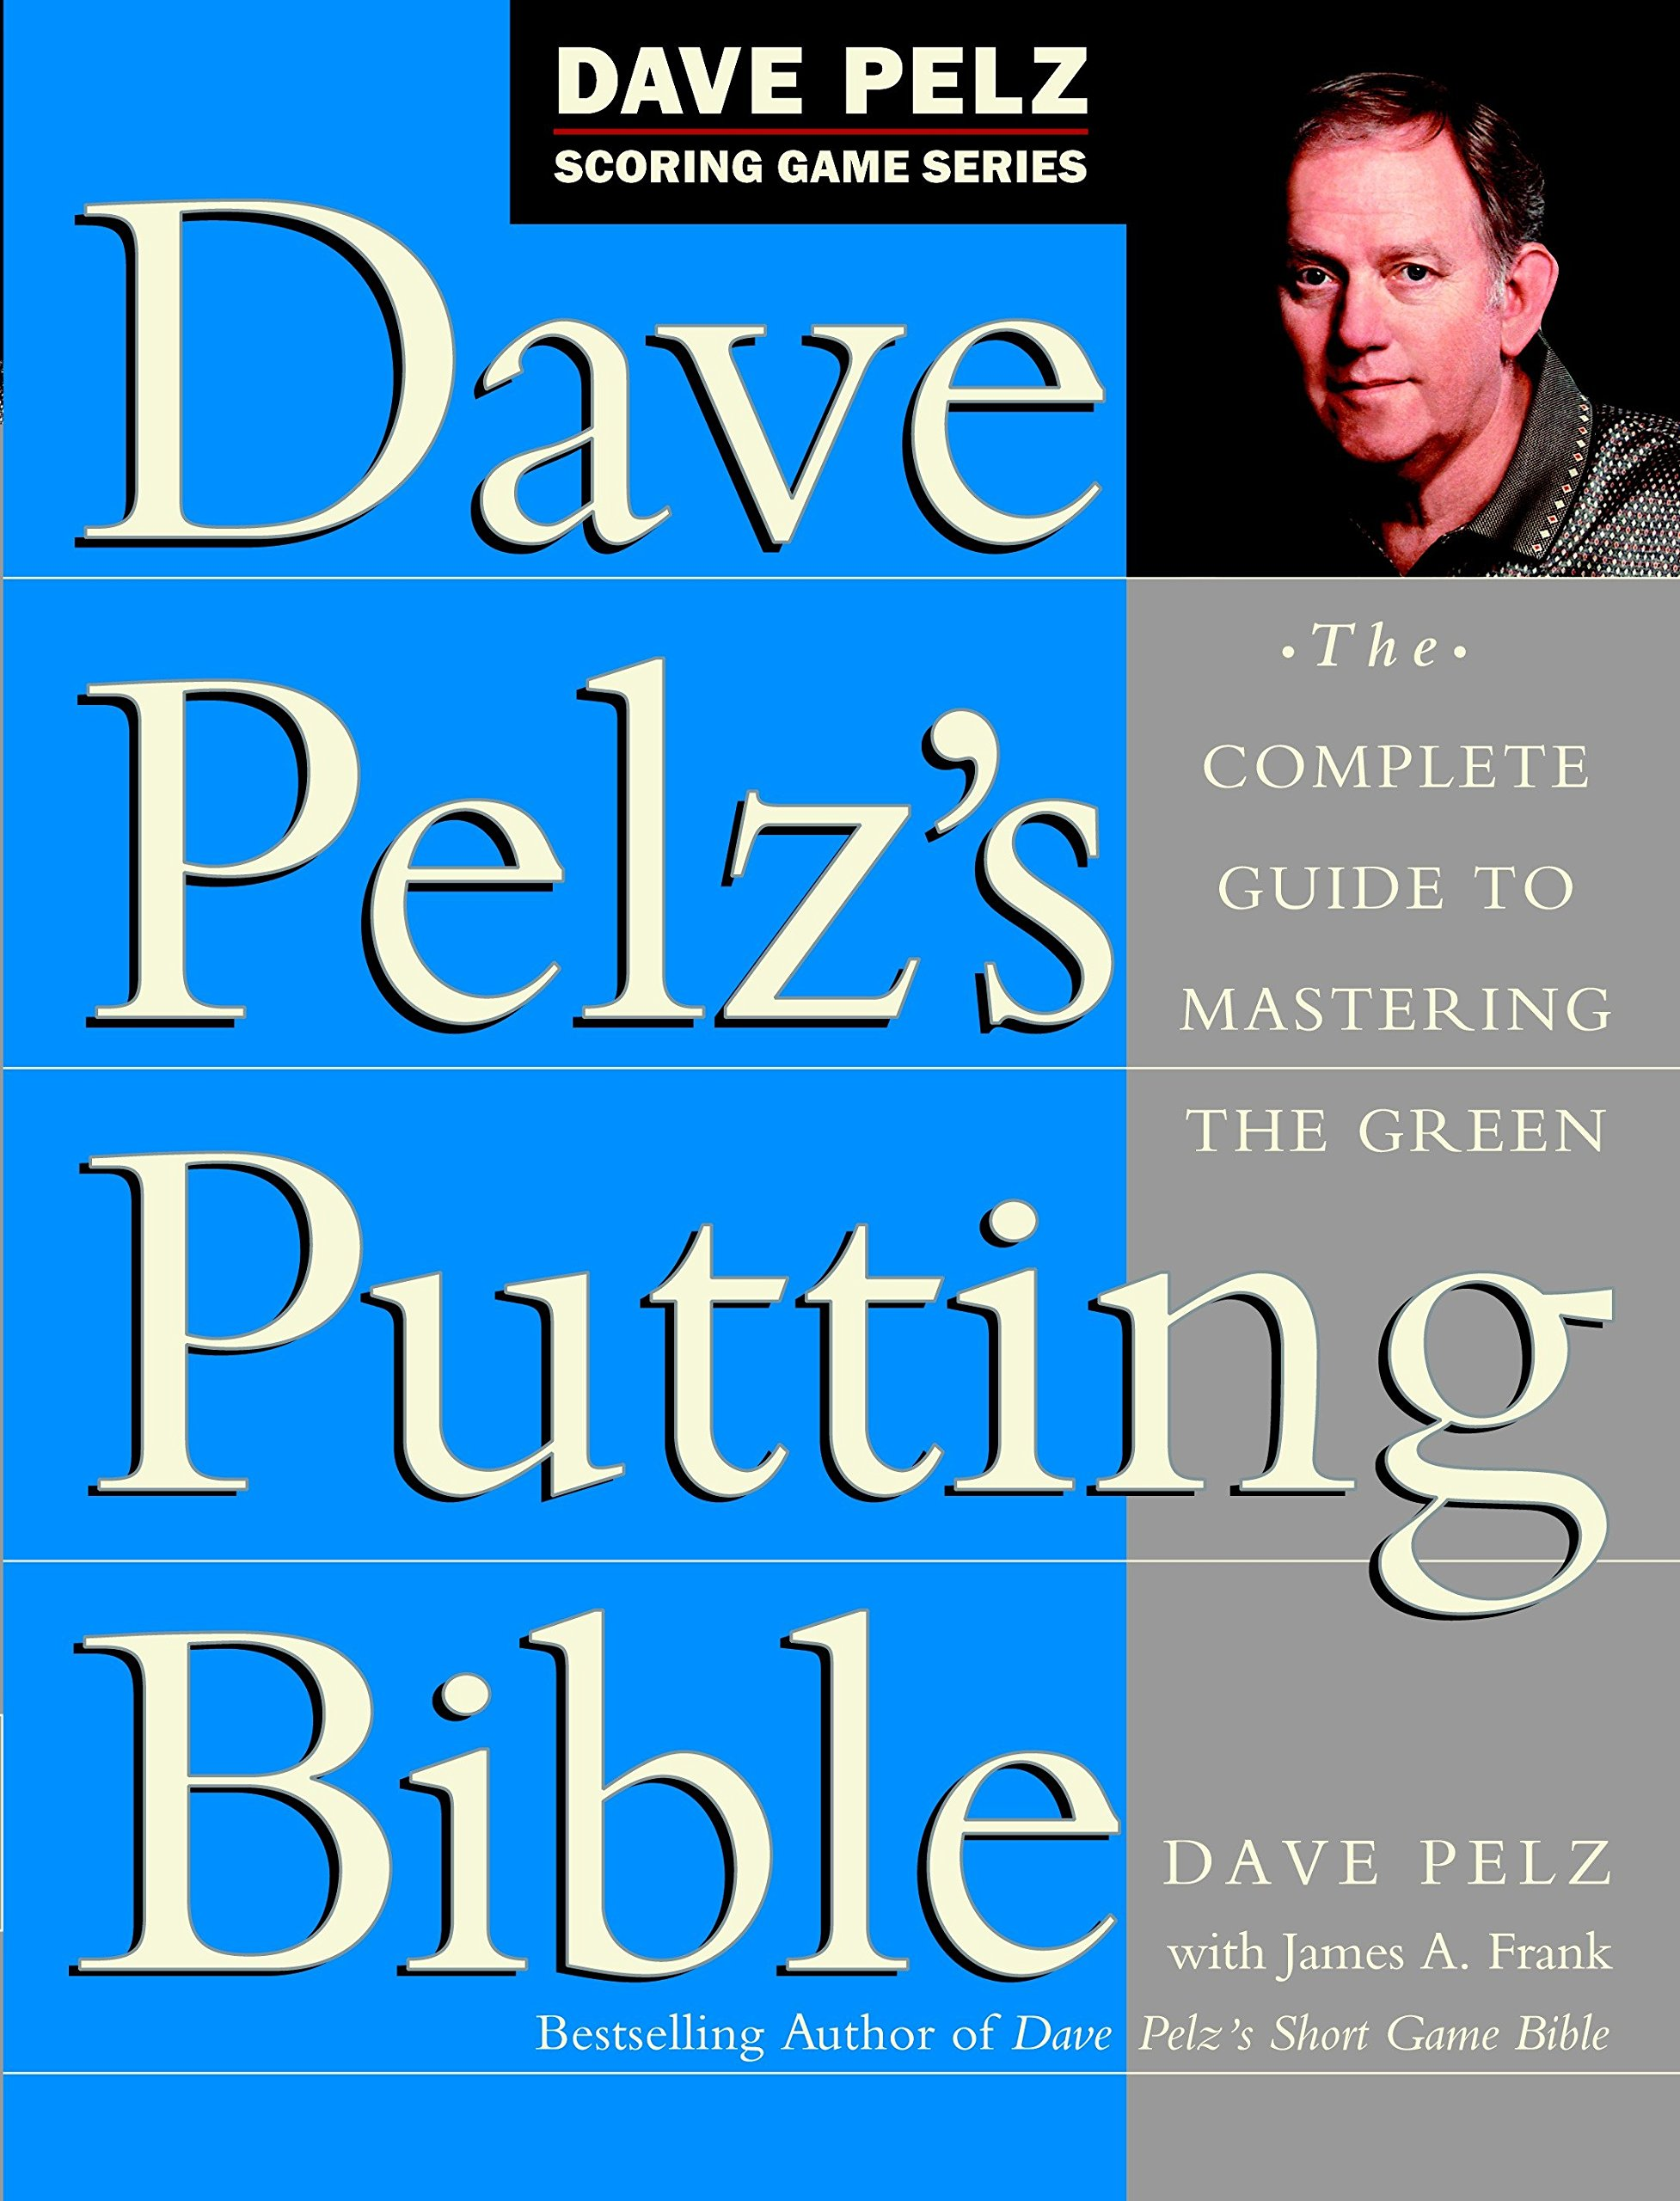 Dave Pelz's Putting Bible: The Complete Guide to Mastering the Green (Dave  Pelz Scoring Game Series): Dave Pelz, James A. Frank: 0890685279897:  Amazon.com: ...